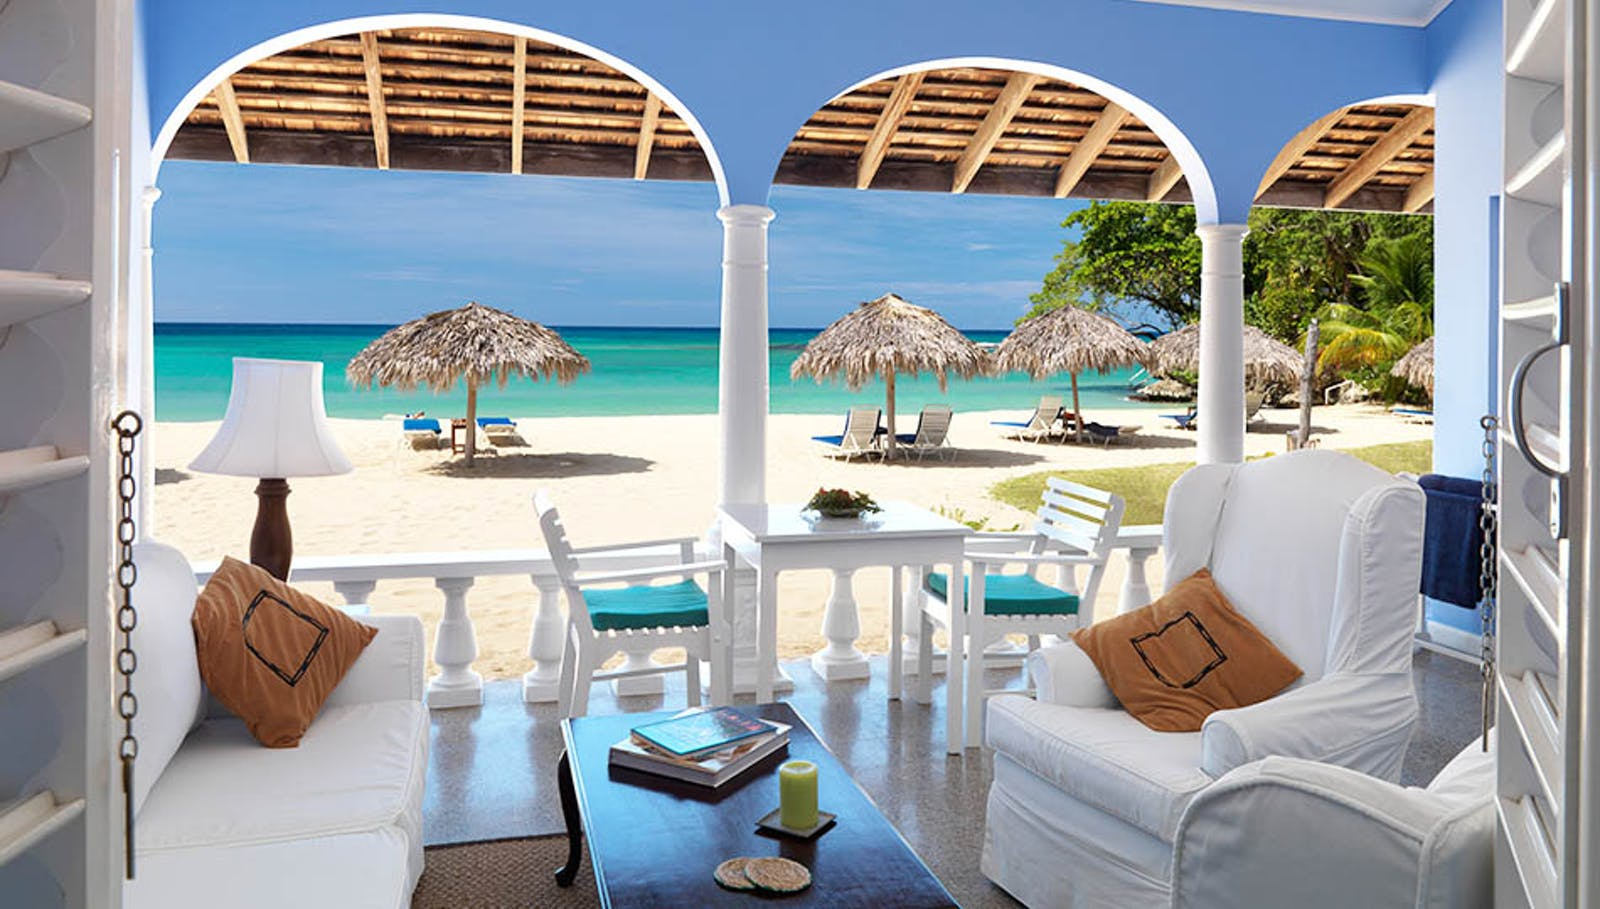 Premier Verandah Suite at Jamaica Inn, Jamaica